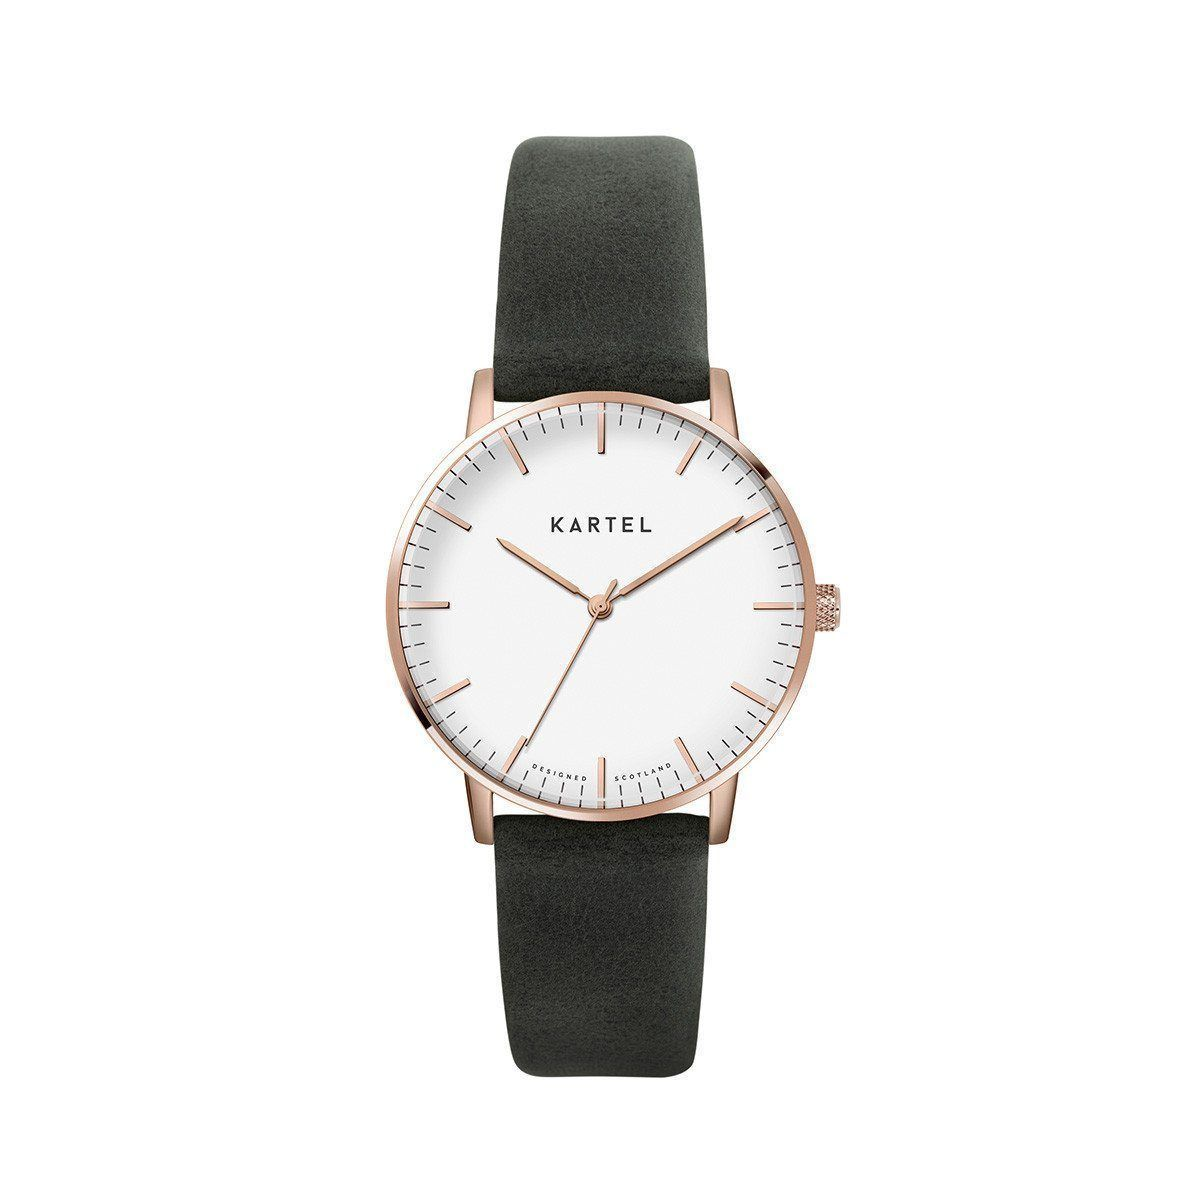 KT-LEW34-RGWG-R_Lewis_34mm_Rose_Gold_White_Grey_Leather_front_485aa37f-1e48-4454-ba4b-19f70e1c231c.jpg